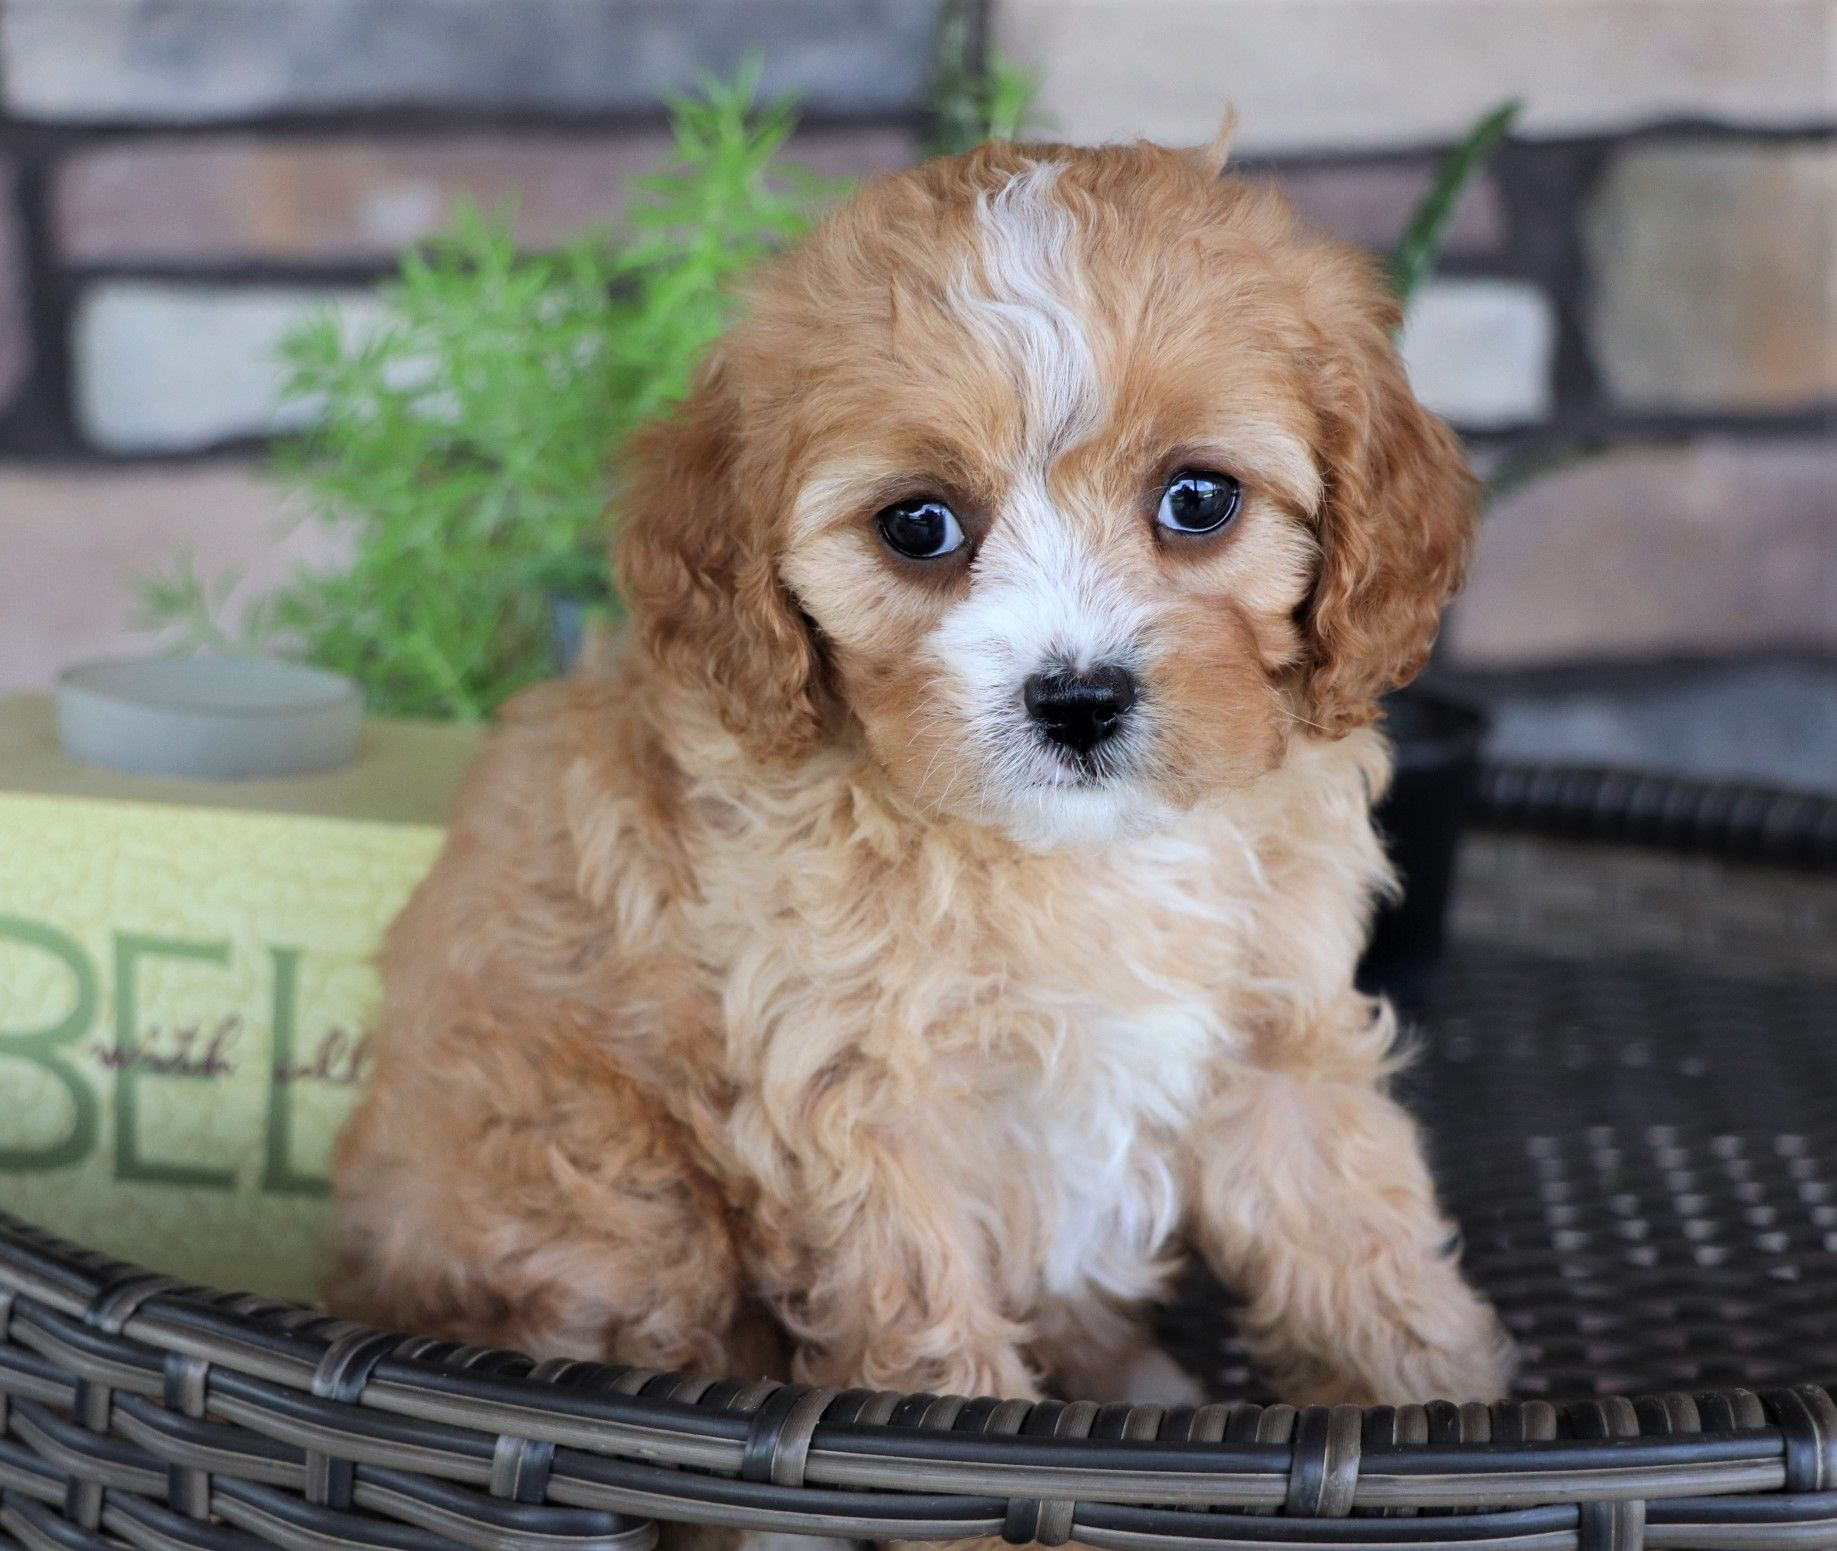 Adorable Friendly Curly These Cavapoo Pups Make A Lovingcompanion Or Great Therapydog They Love T Cavapoo Puppies Cute Baby Animals Baby Animals